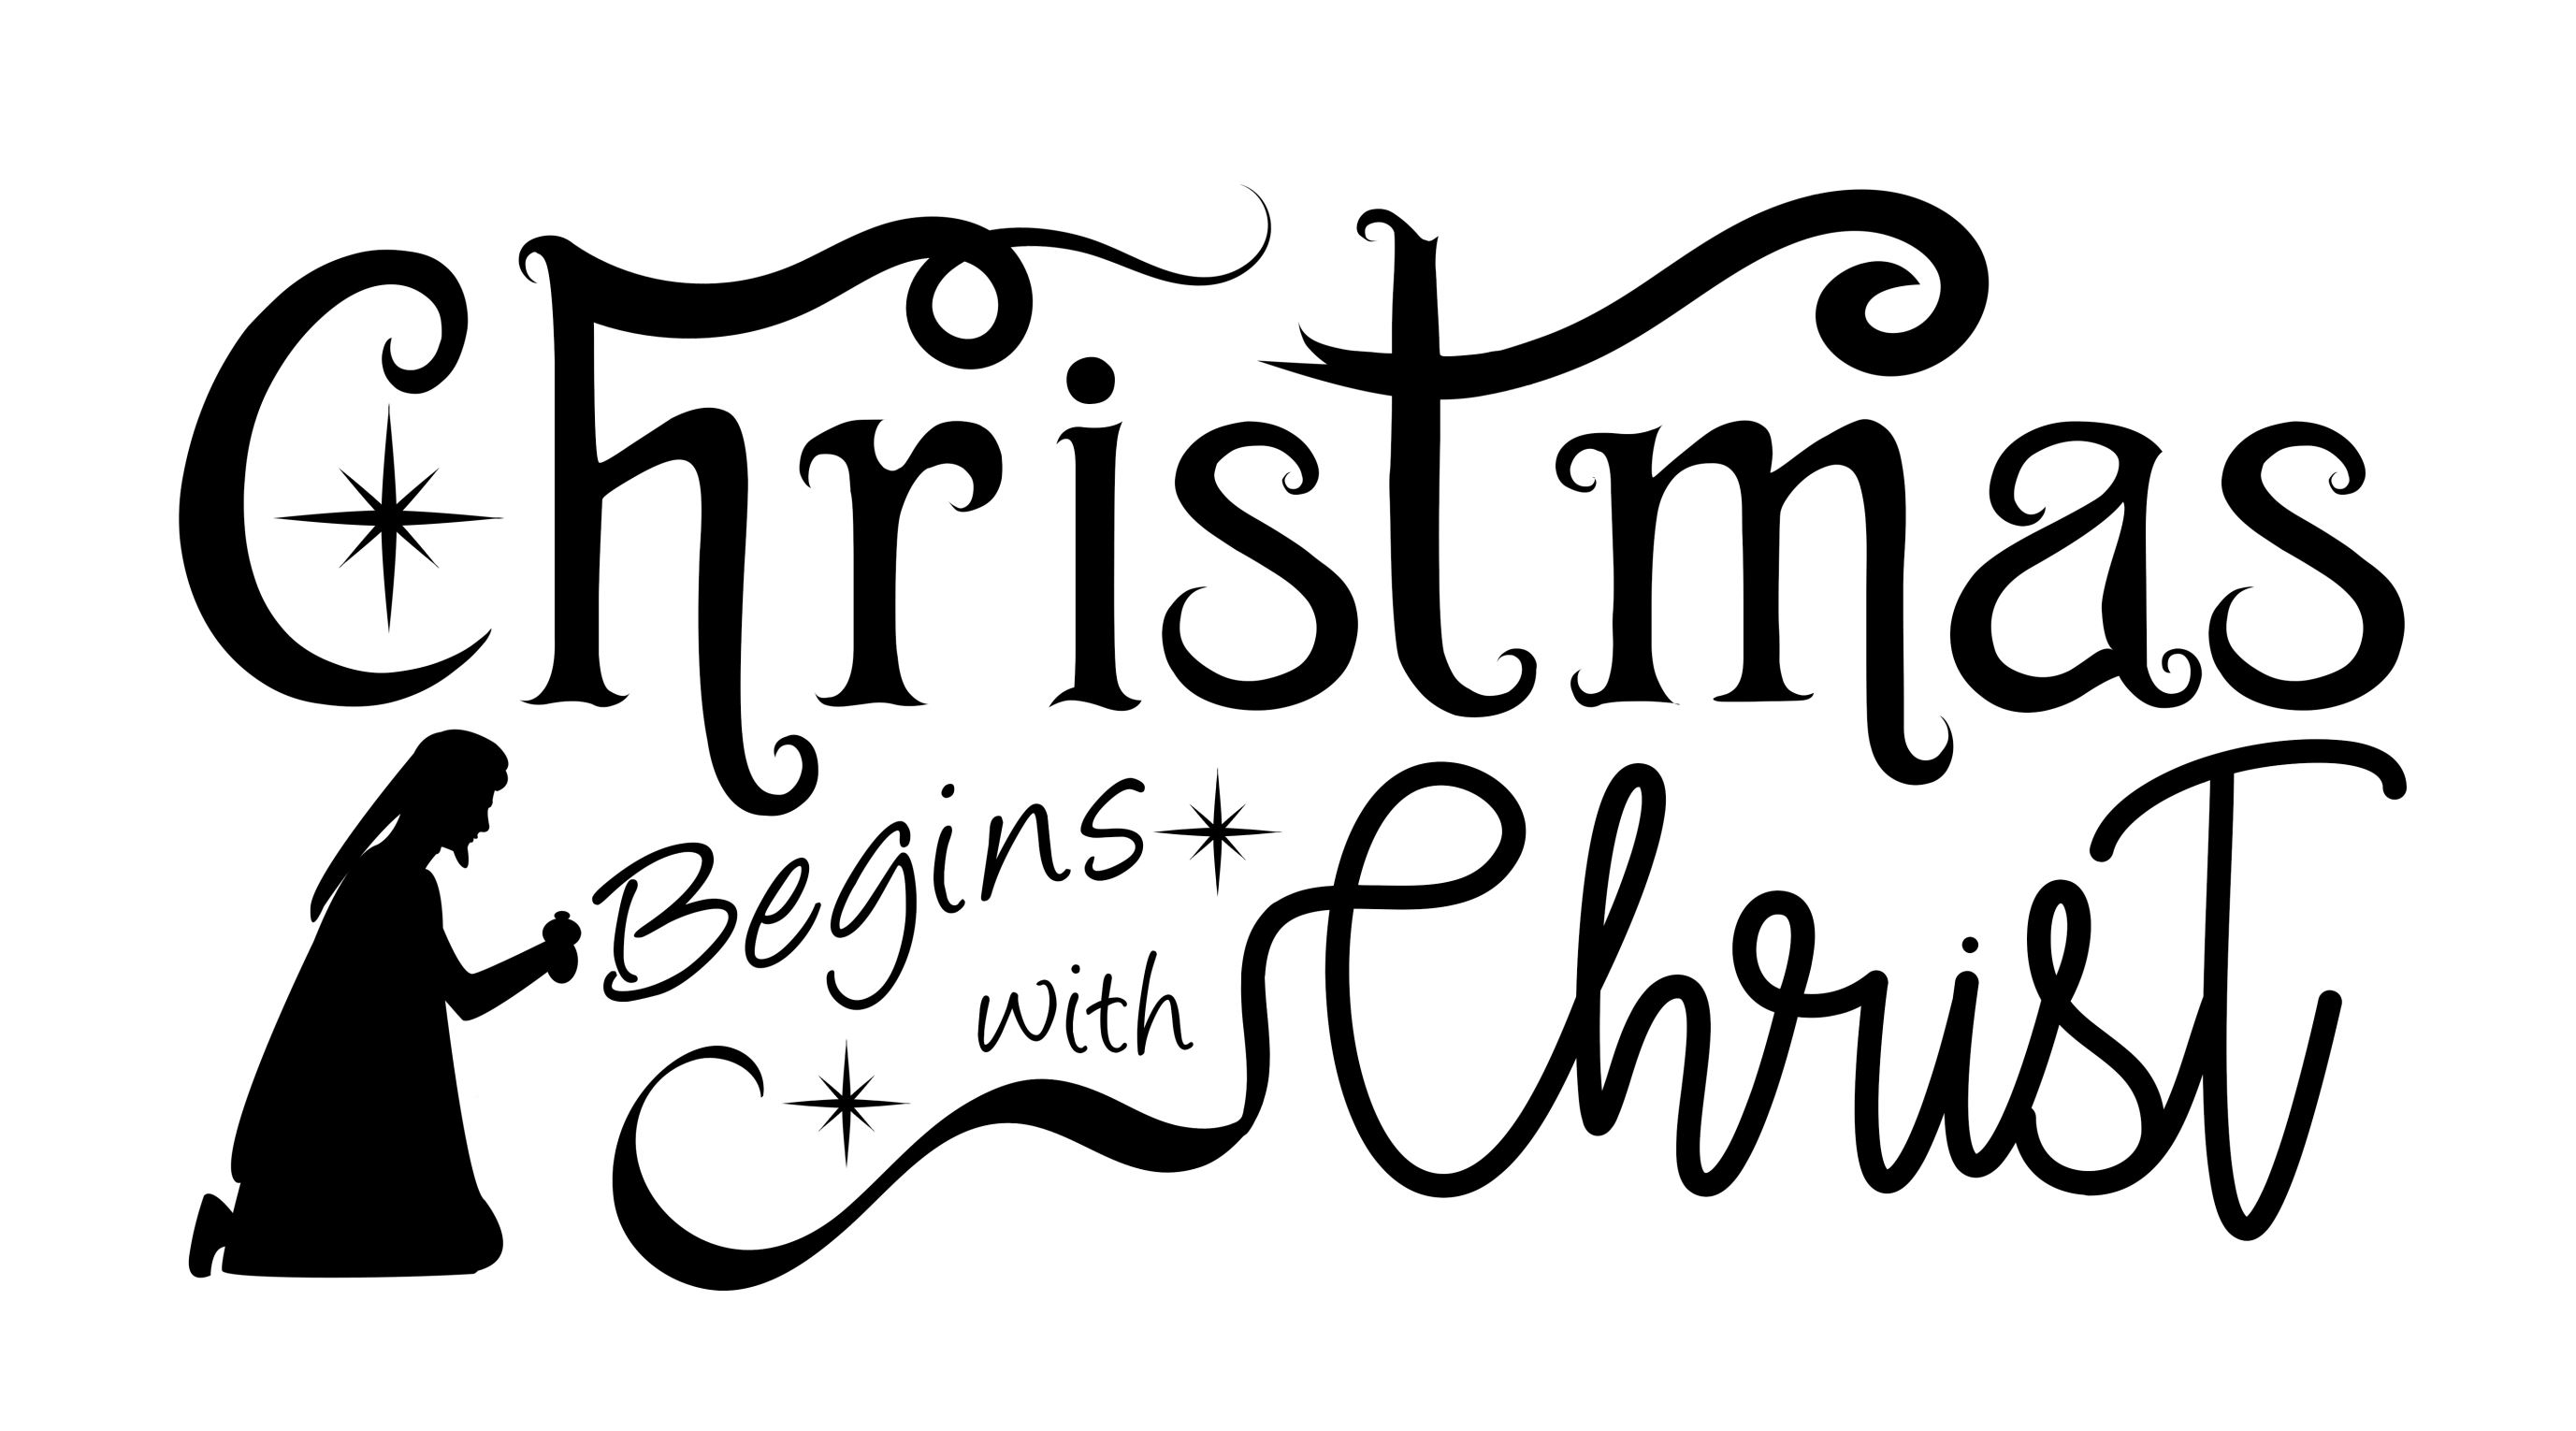 Religious Christmas Quotes 13 Christmas Messages Svg Jpg